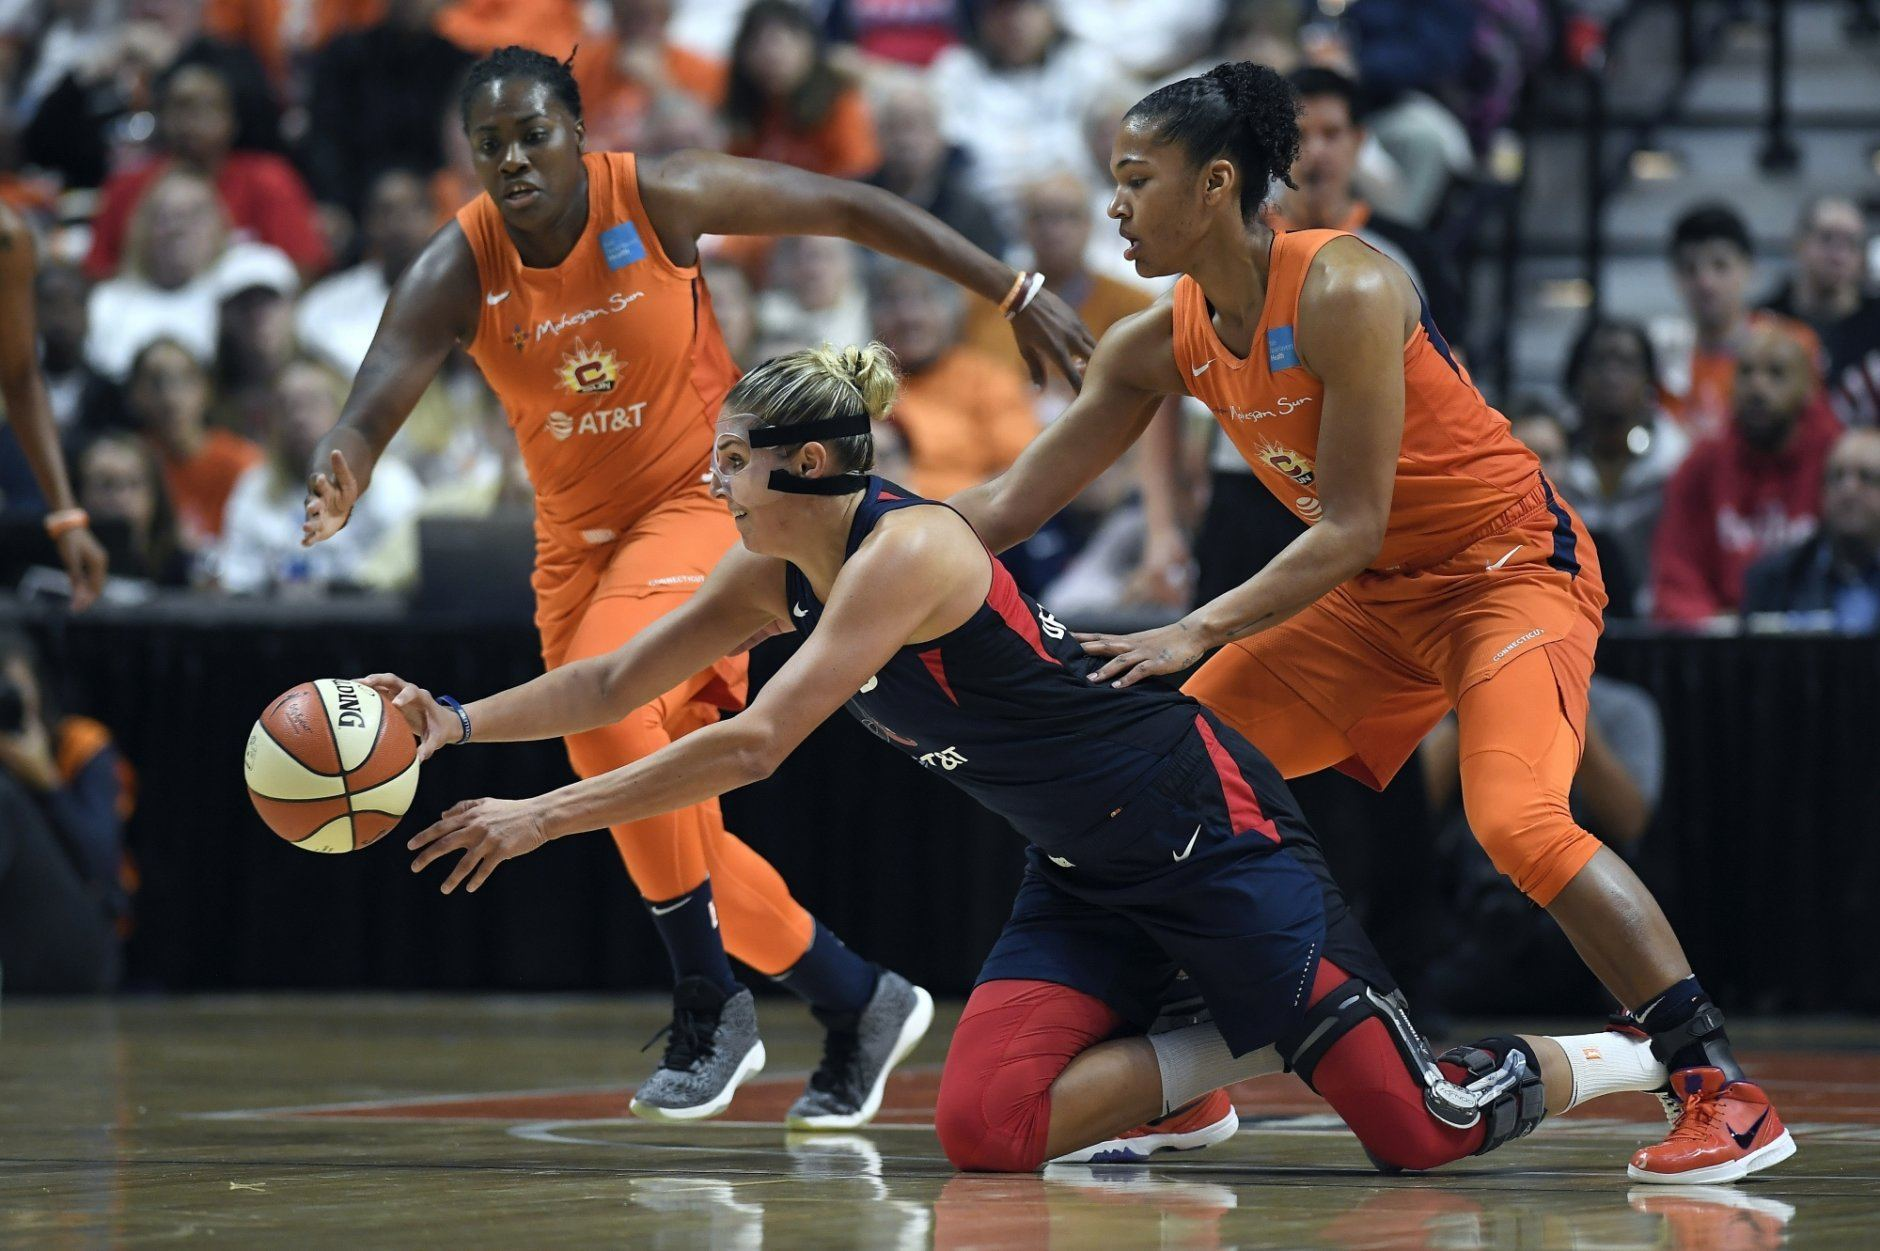 Washington Mystics' Elena Delle Donne, center, passes the ball between Connecticut Sun's Shekinna Stricklen, left, and Alyssa Thomas, right, during the first half in Game 3 of basketball's WNBA Finals, Sunday, Oct. 6, 2019, in Uncasville, Conn. (AP Photo/Jessica Hill)